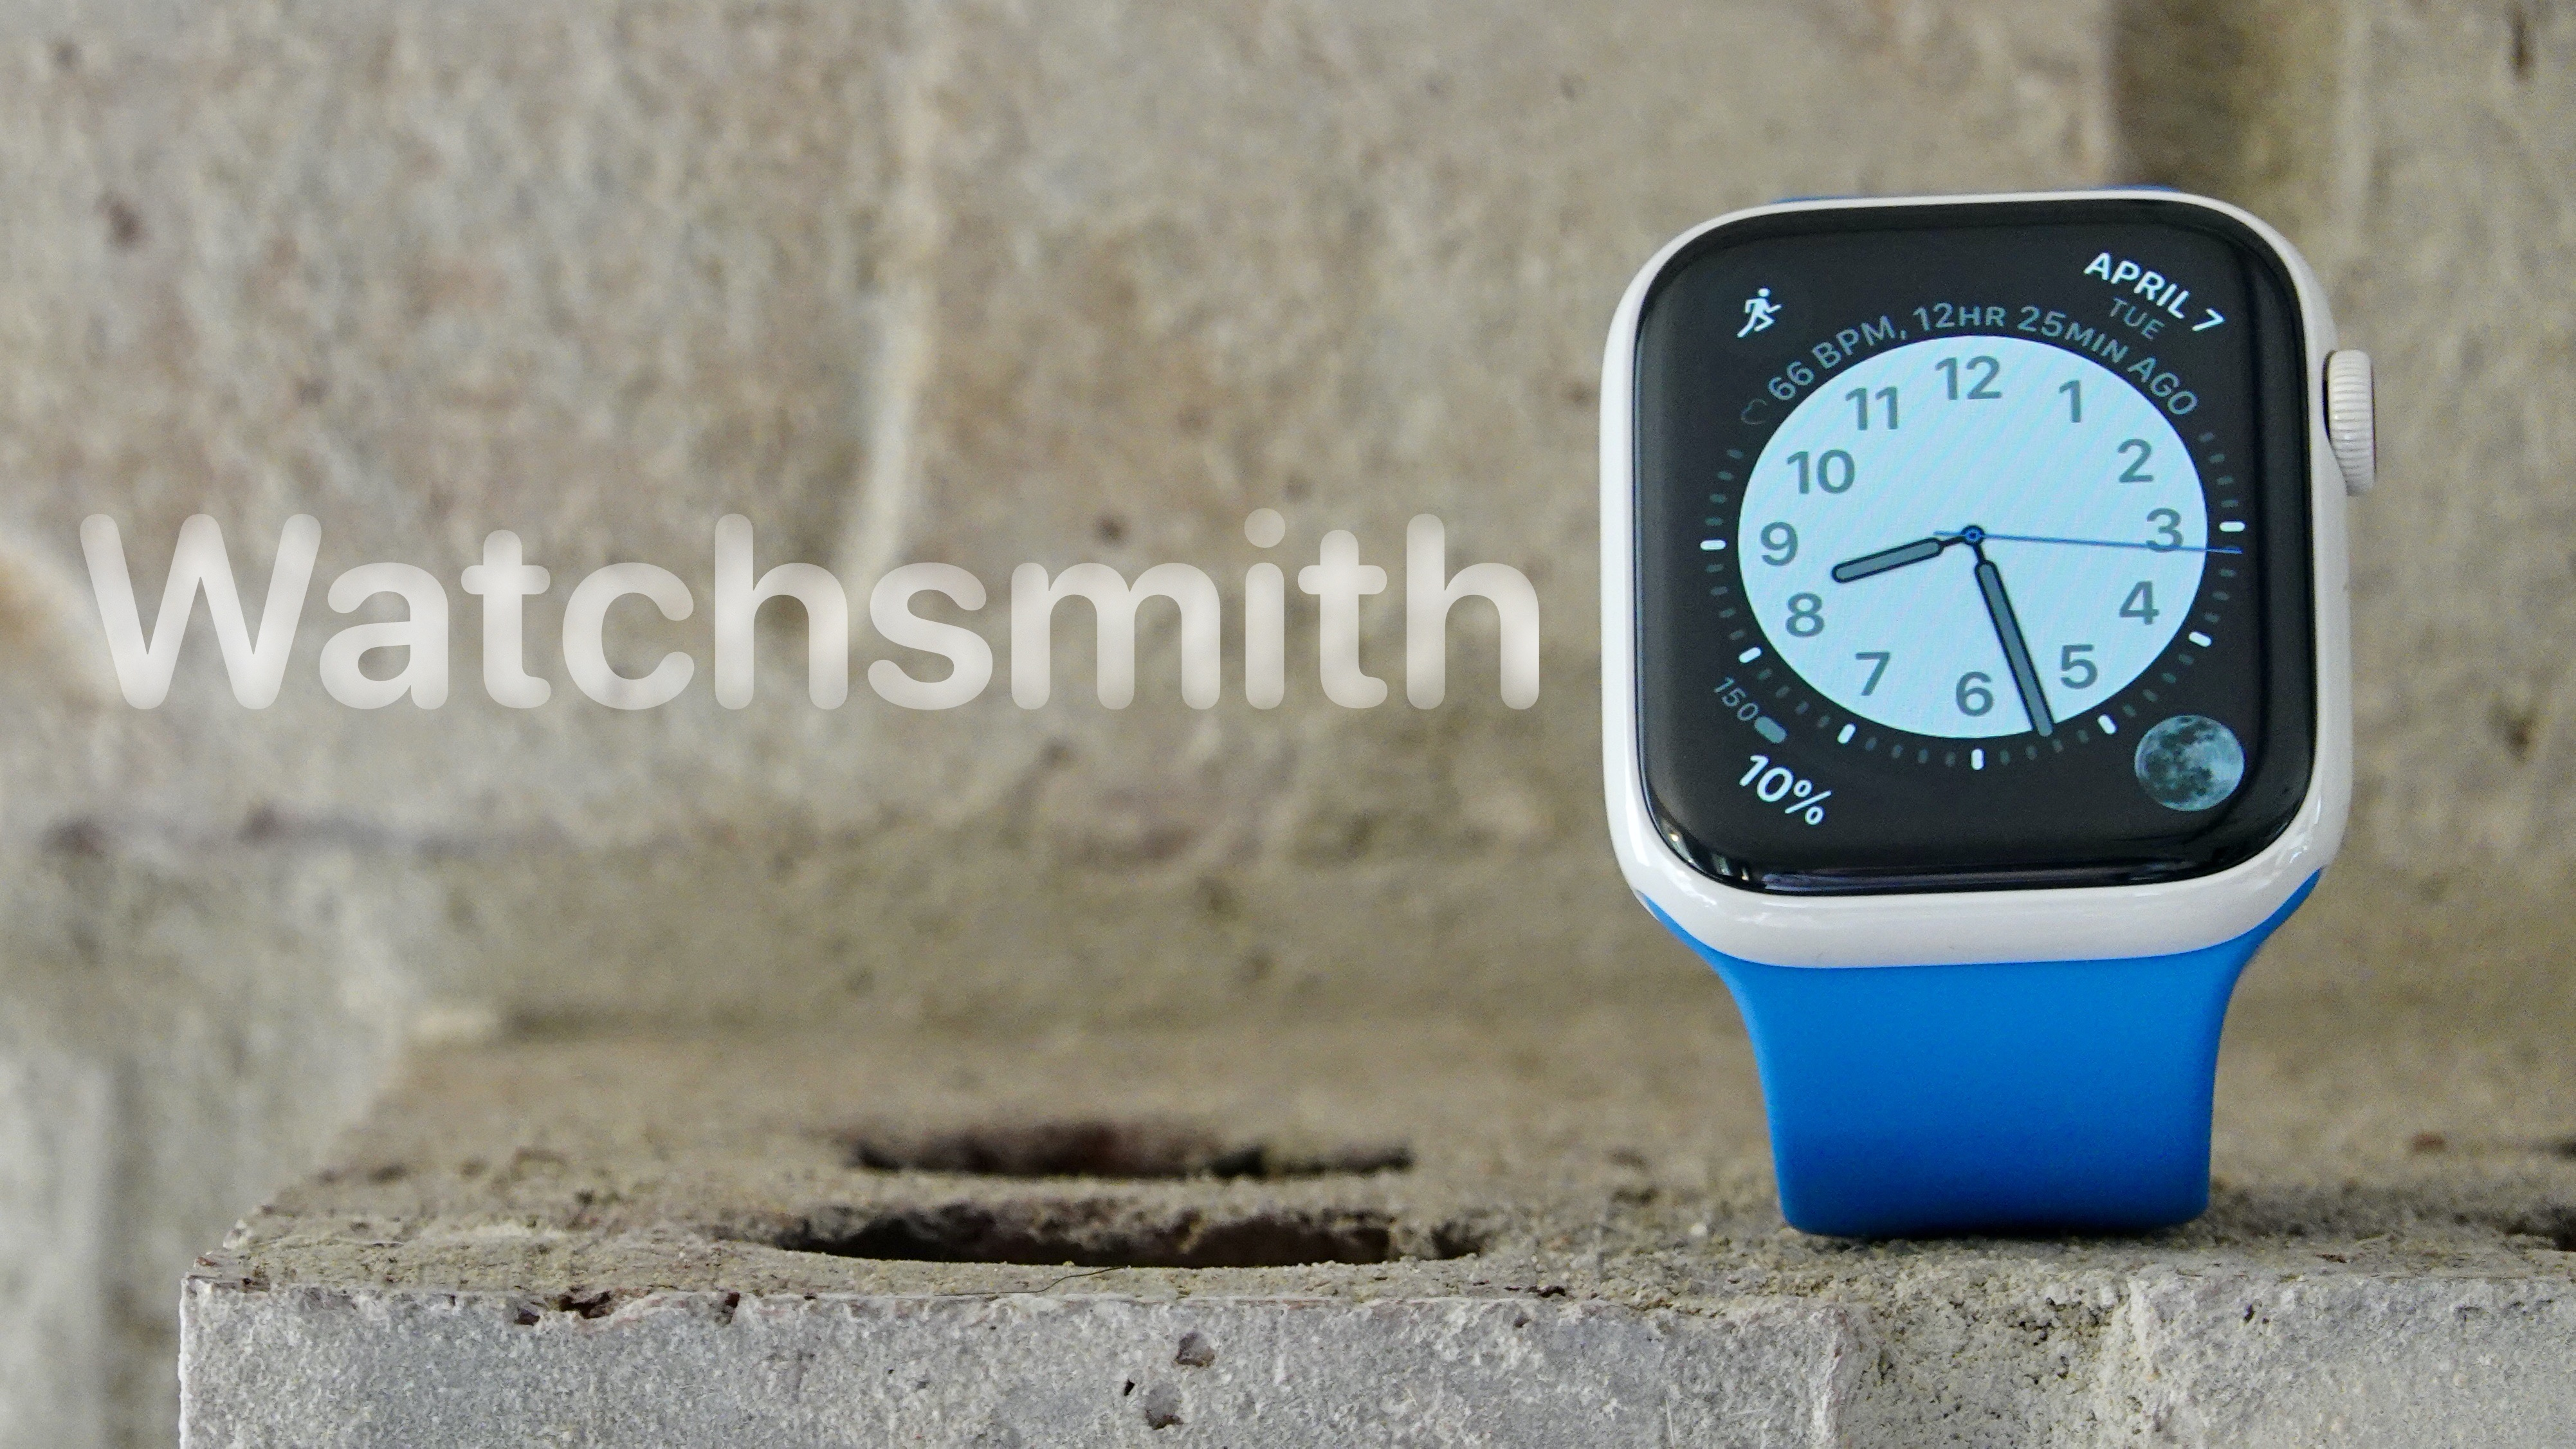 Update Watchos 7 Multi Complication Support Watchsmith Is A Must Have App For Unlocking New Apple Watch Features With Dynamic Complications 9to5mac